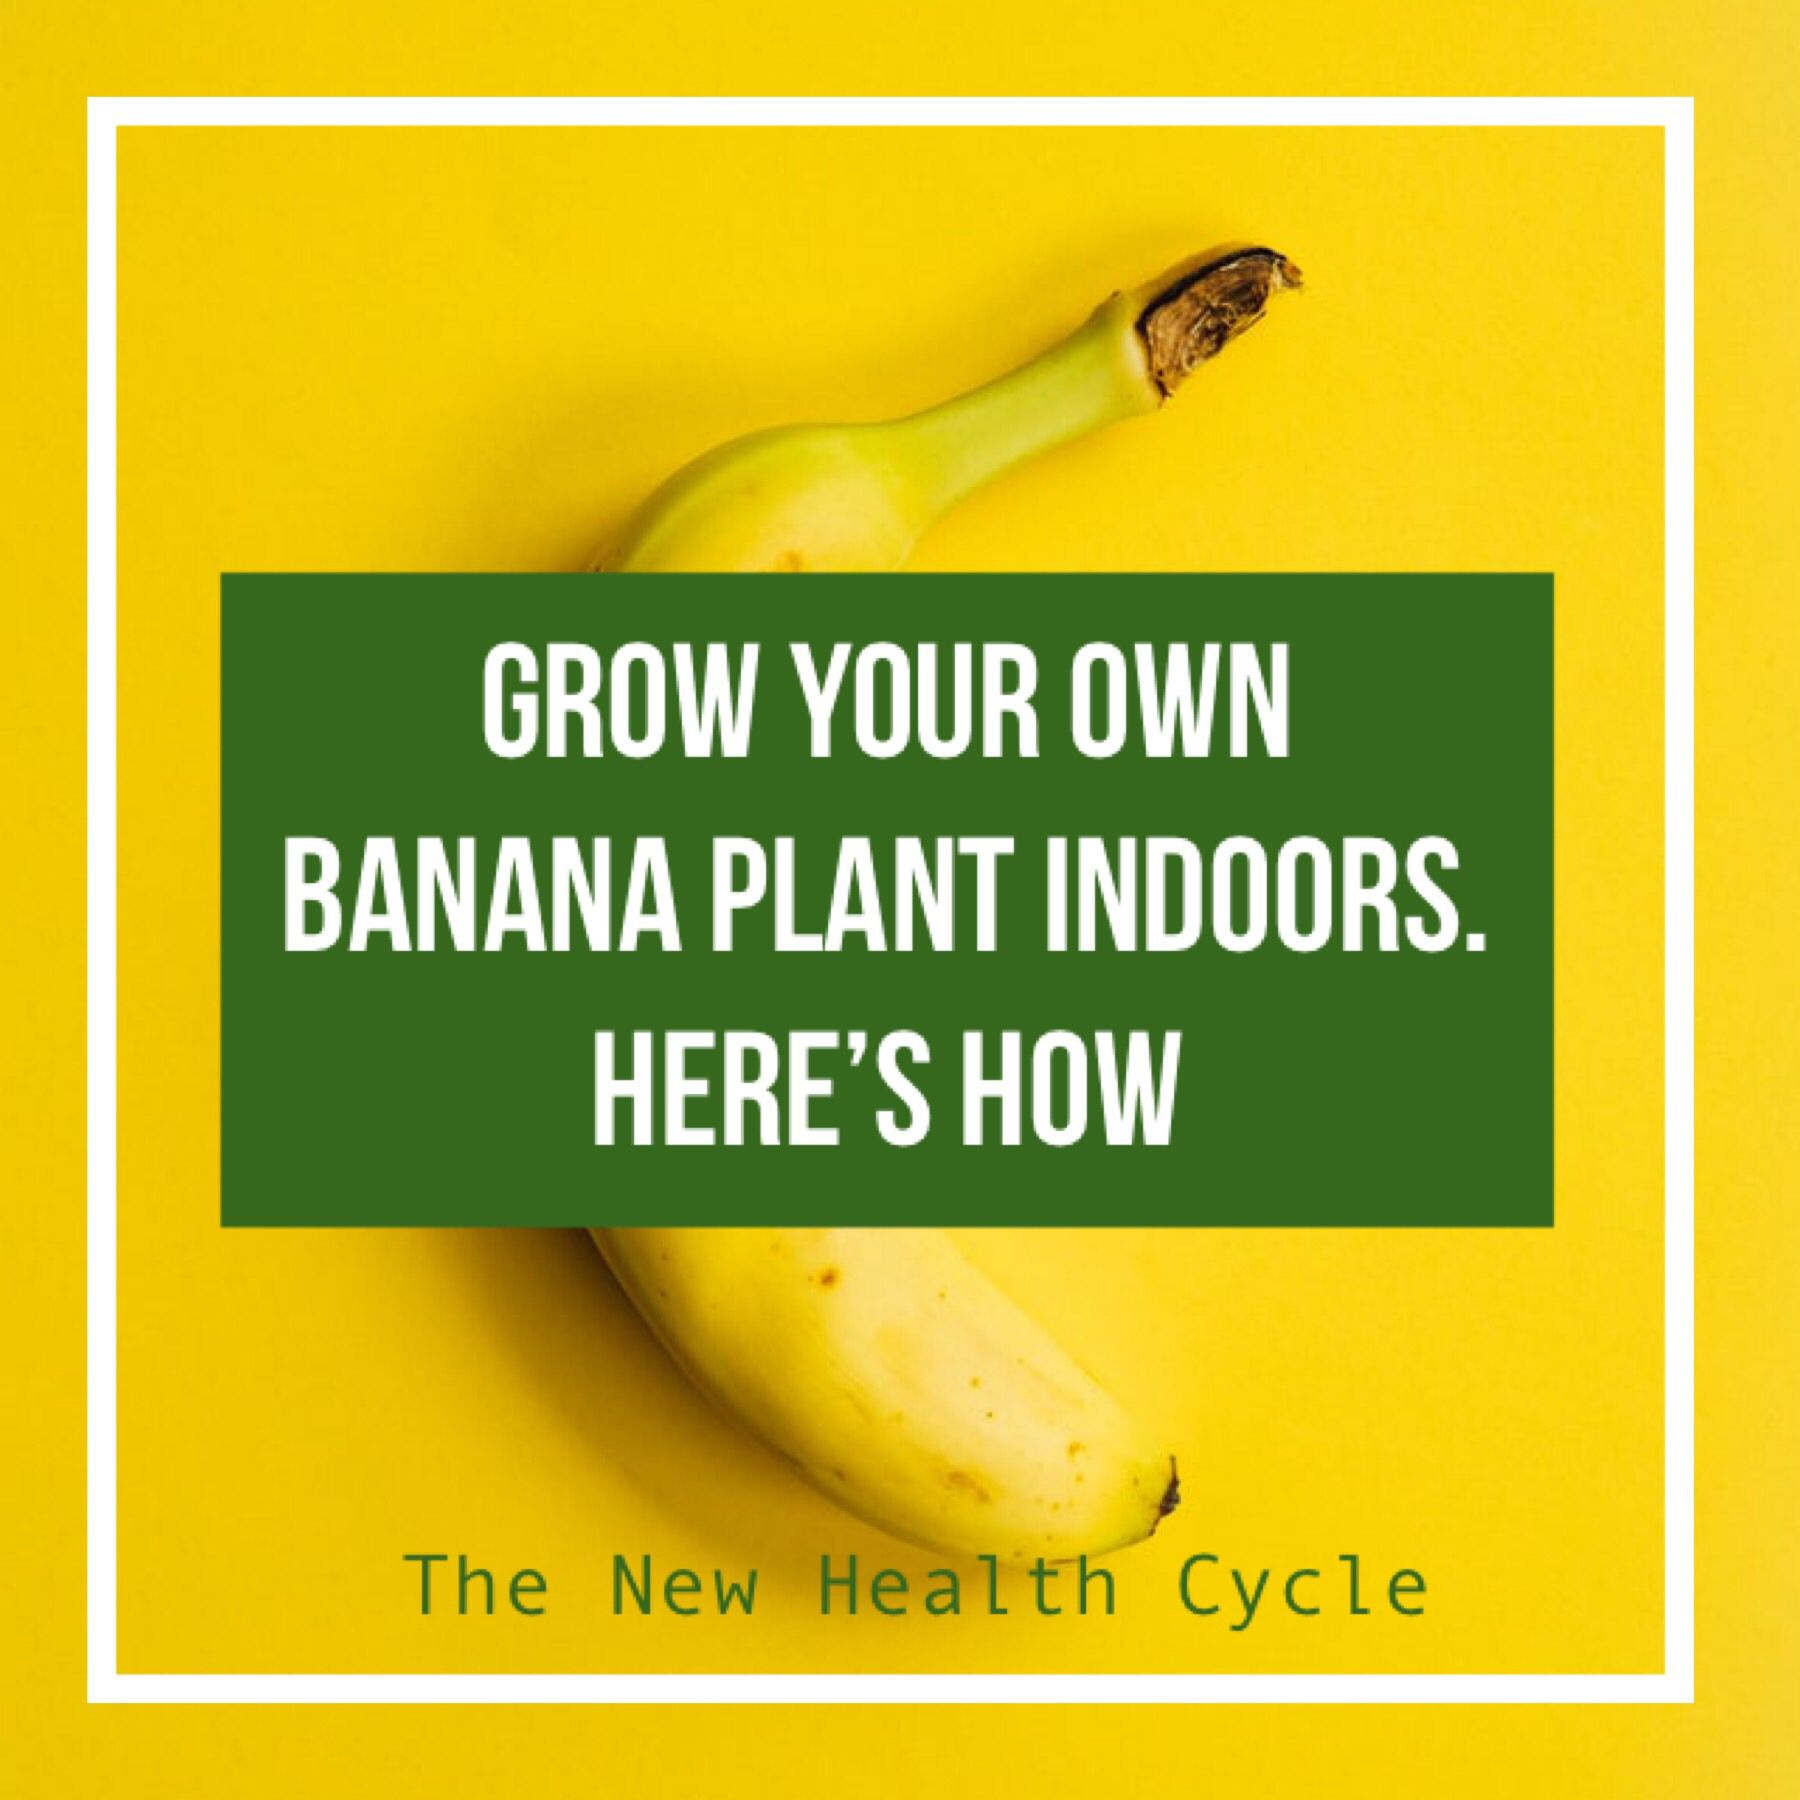 Grow your own banana plant indoors #howtogrowplants